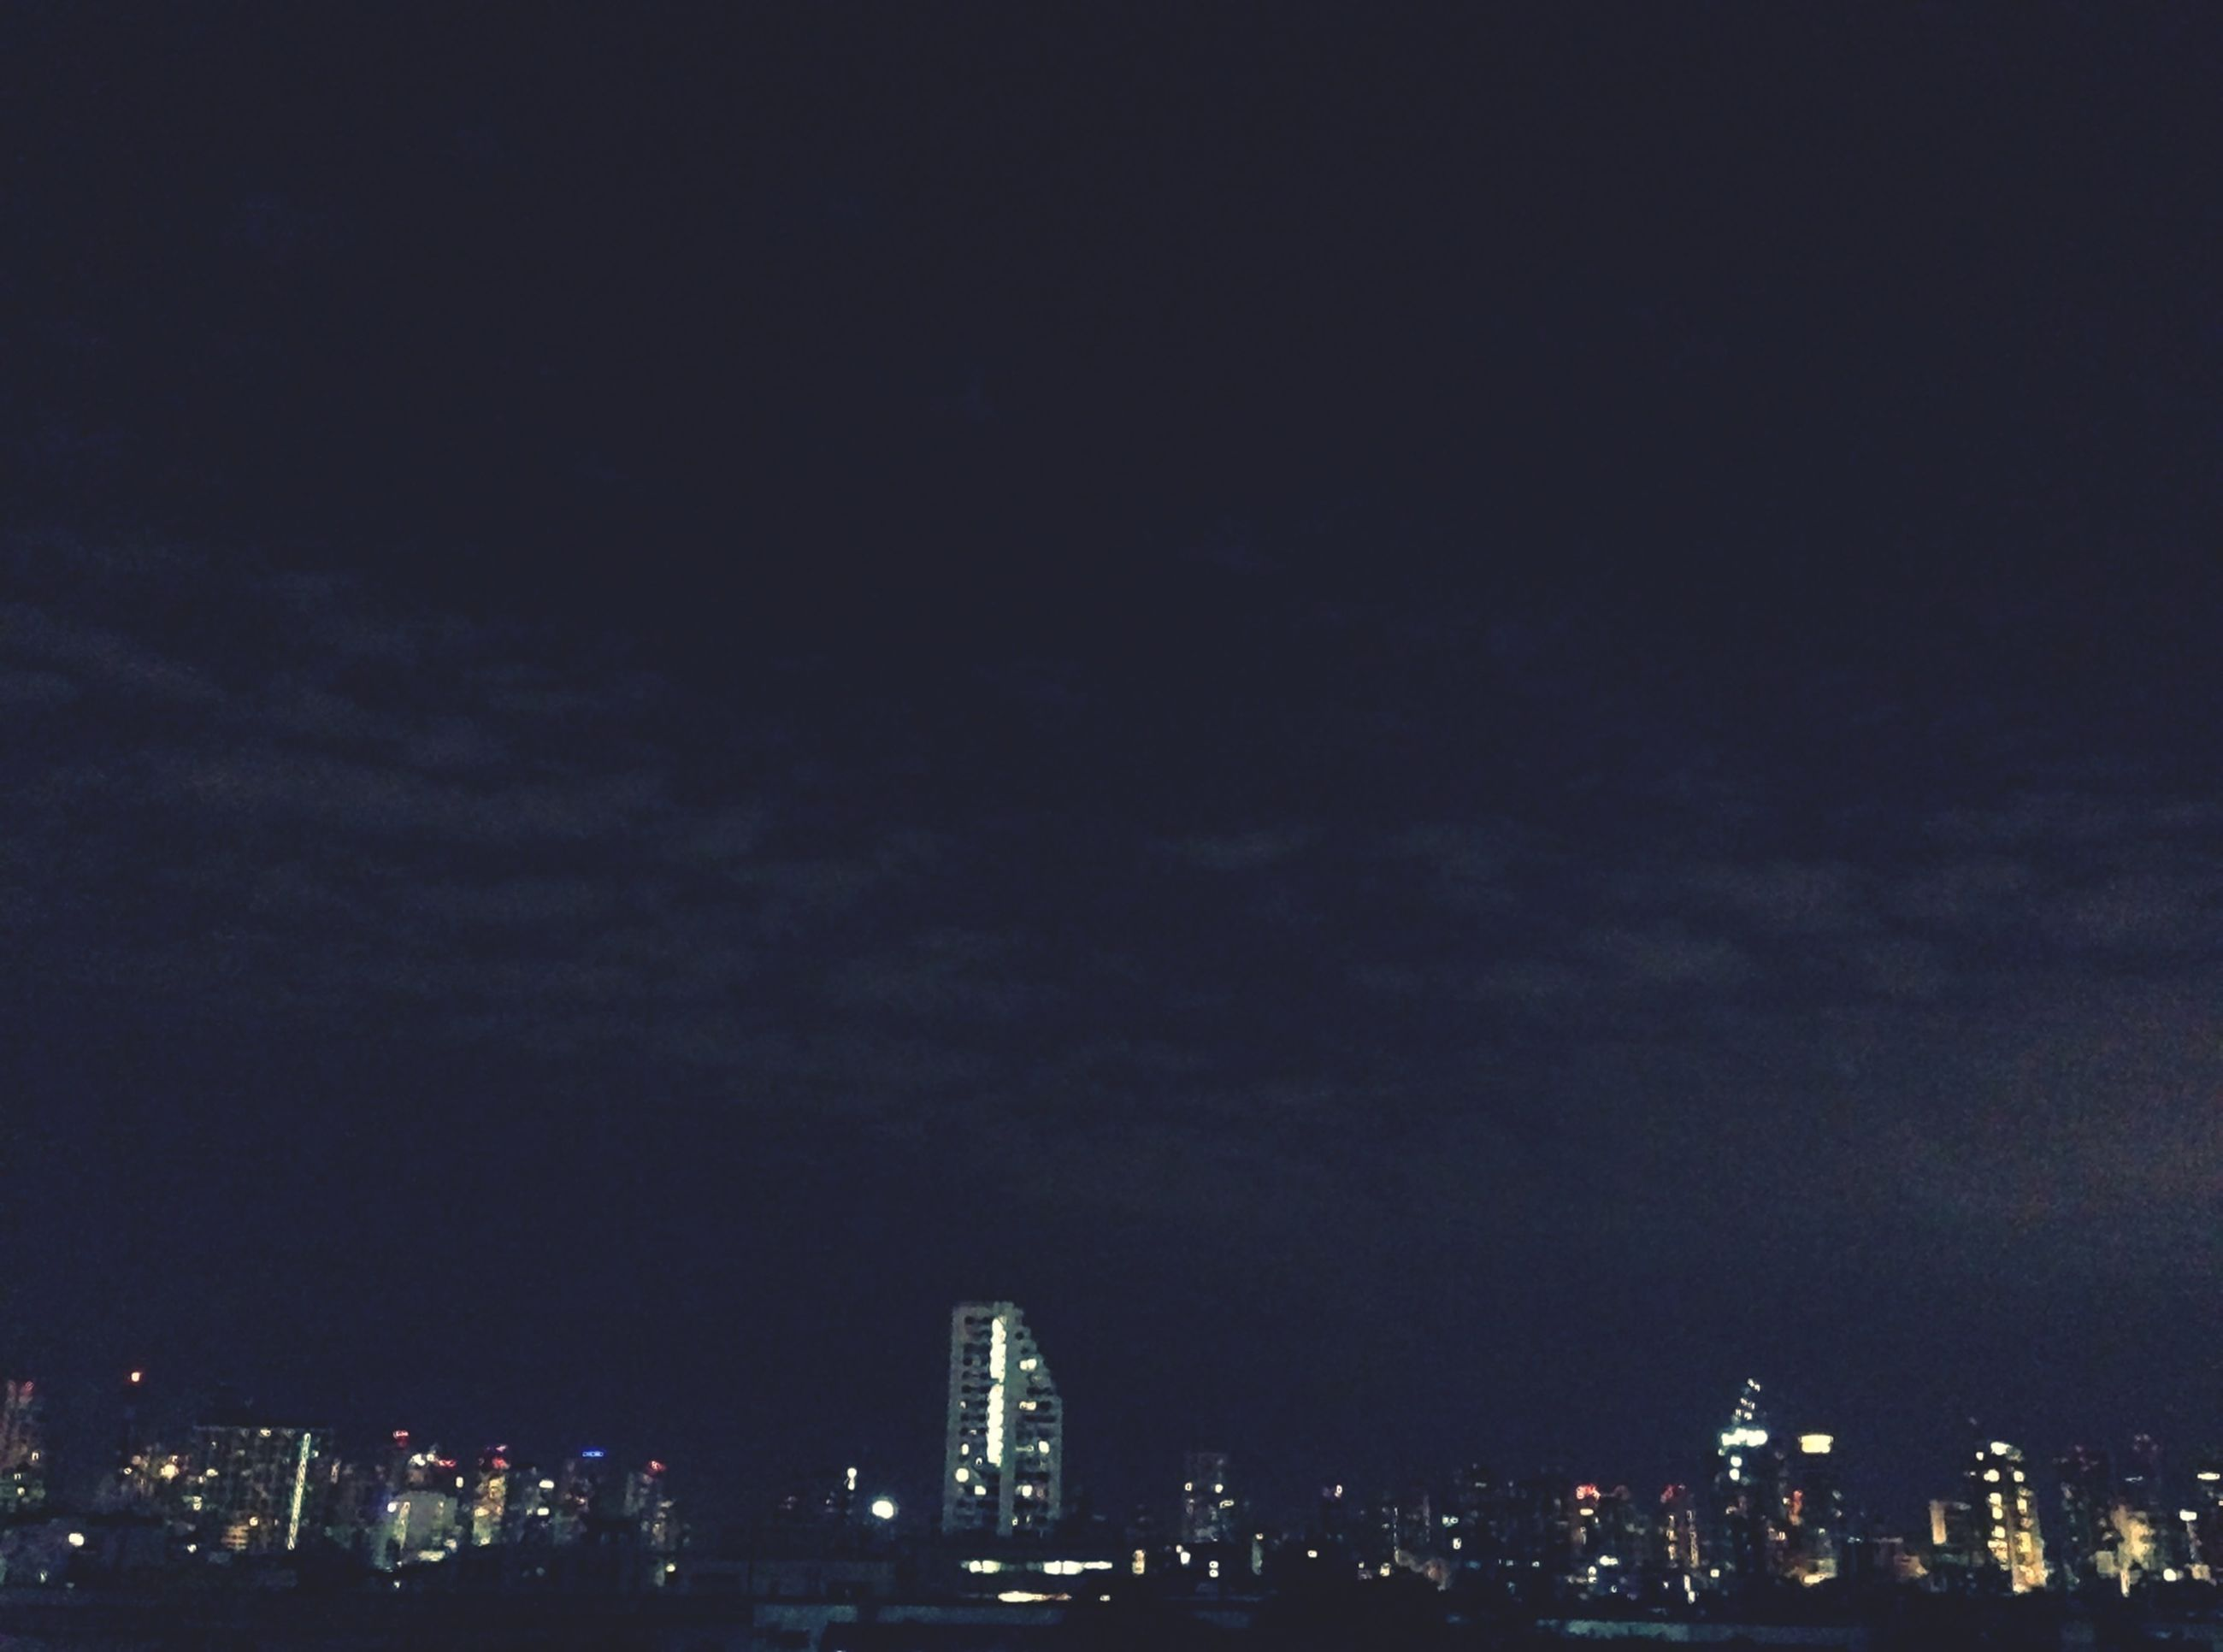 city, architecture, night, cityscape, illuminated, building exterior, built structure, sky, skyscraper, modern, urban skyline, city life, crowded, office building, dusk, copy space, residential district, capital cities, residential building, tower